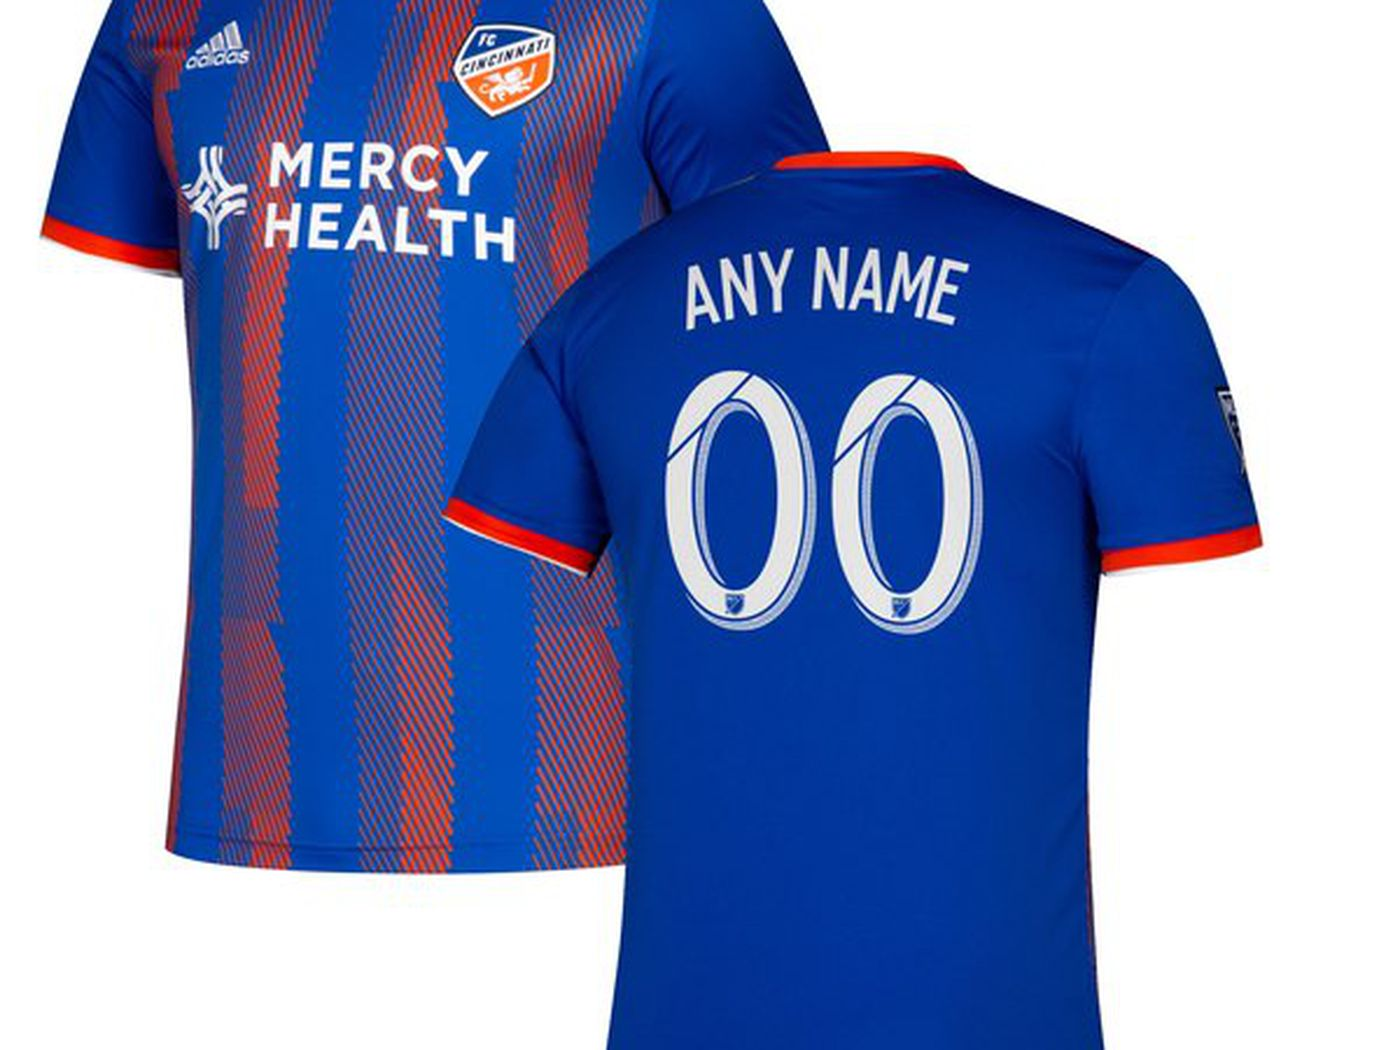 buy online 3c9a0 7277c MLS Uniforms 2019: The new primary and secondary kits for ...